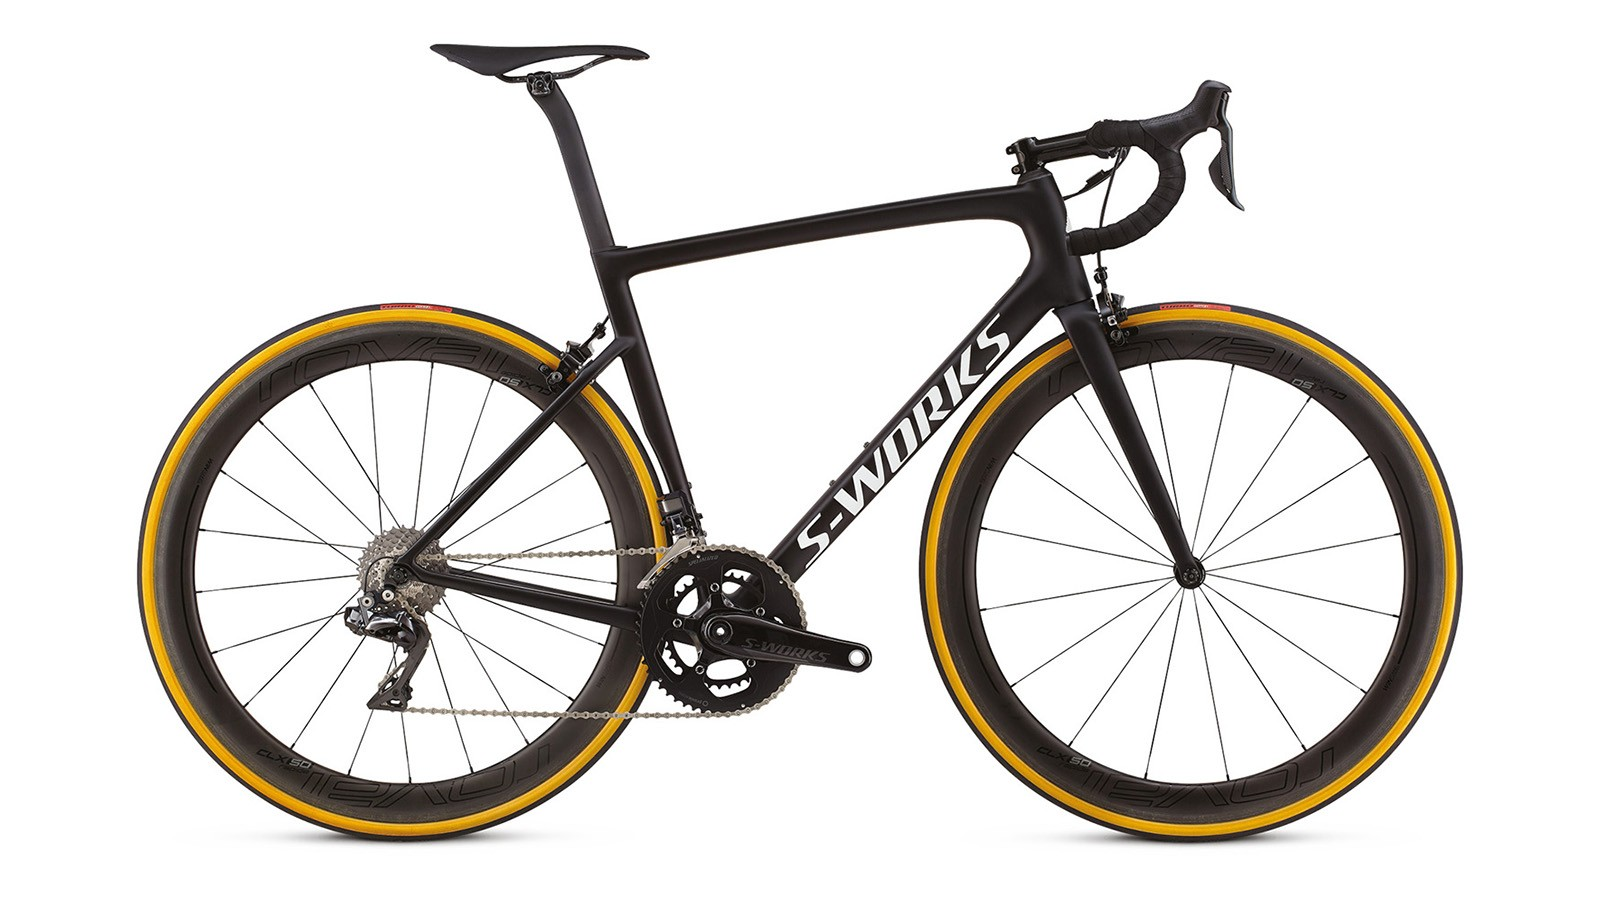 The price of entry into S-Works territory is an order of magnitude above the standard frame